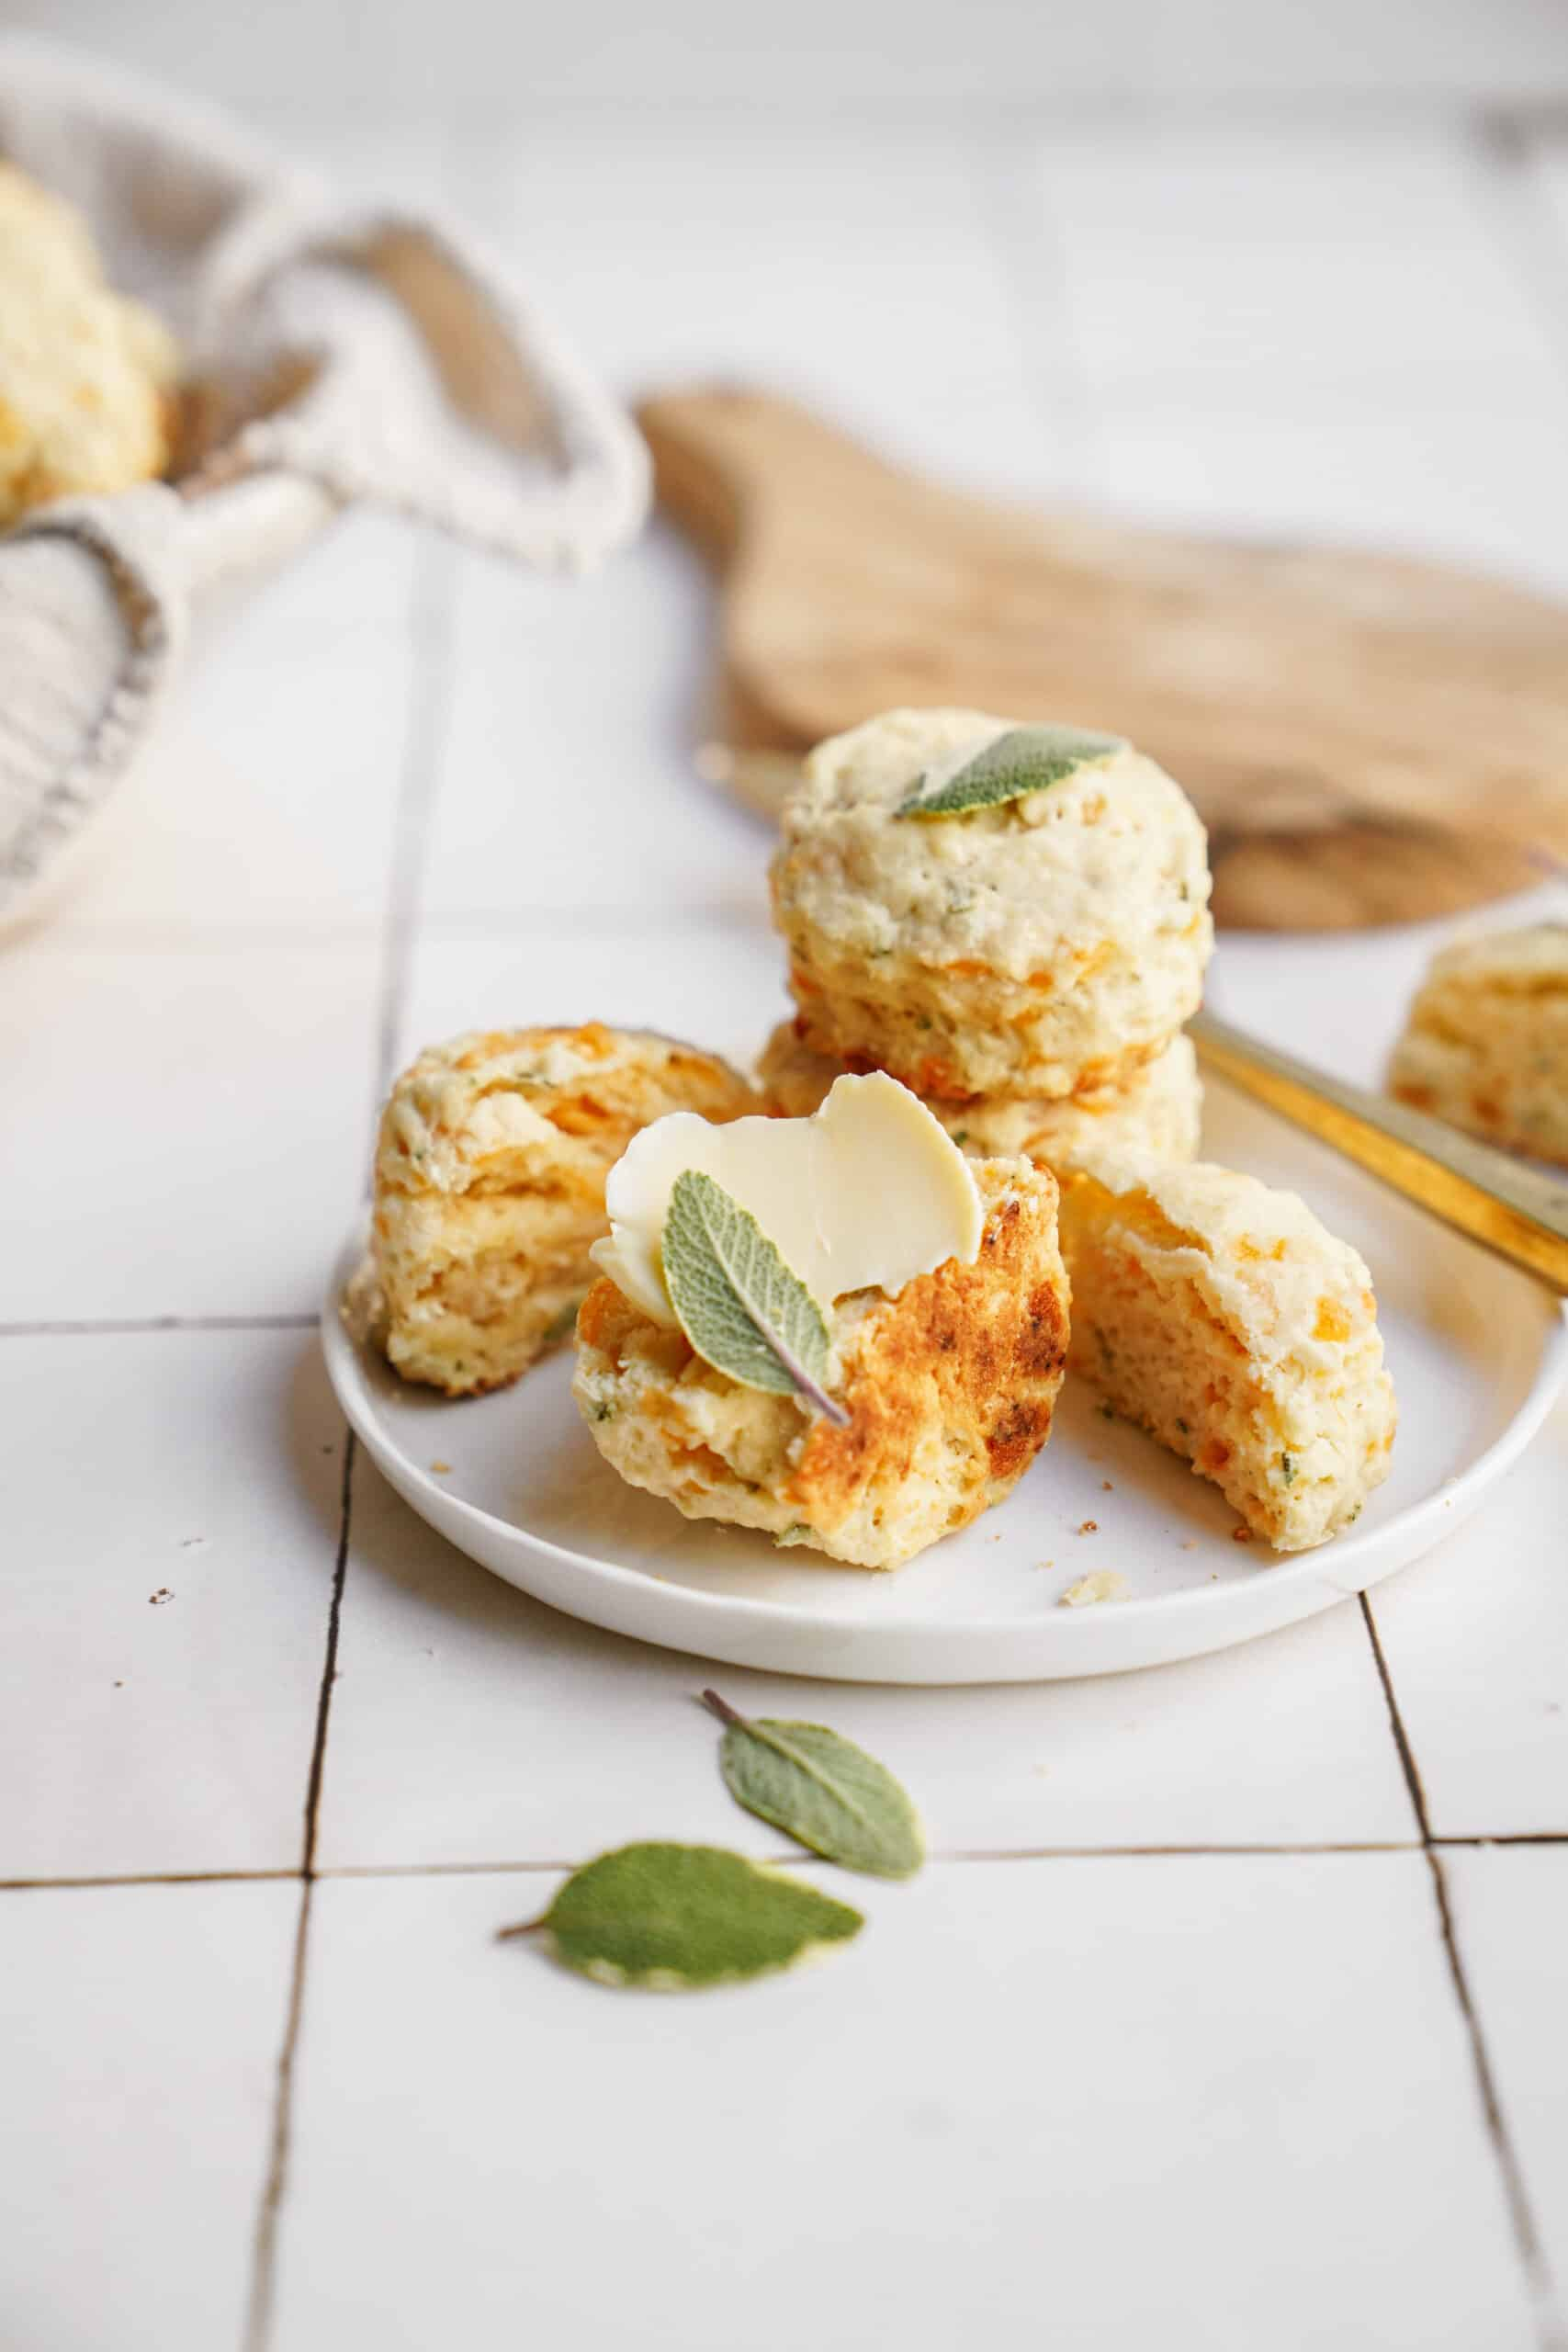 Cheddar biscuits on a white plate